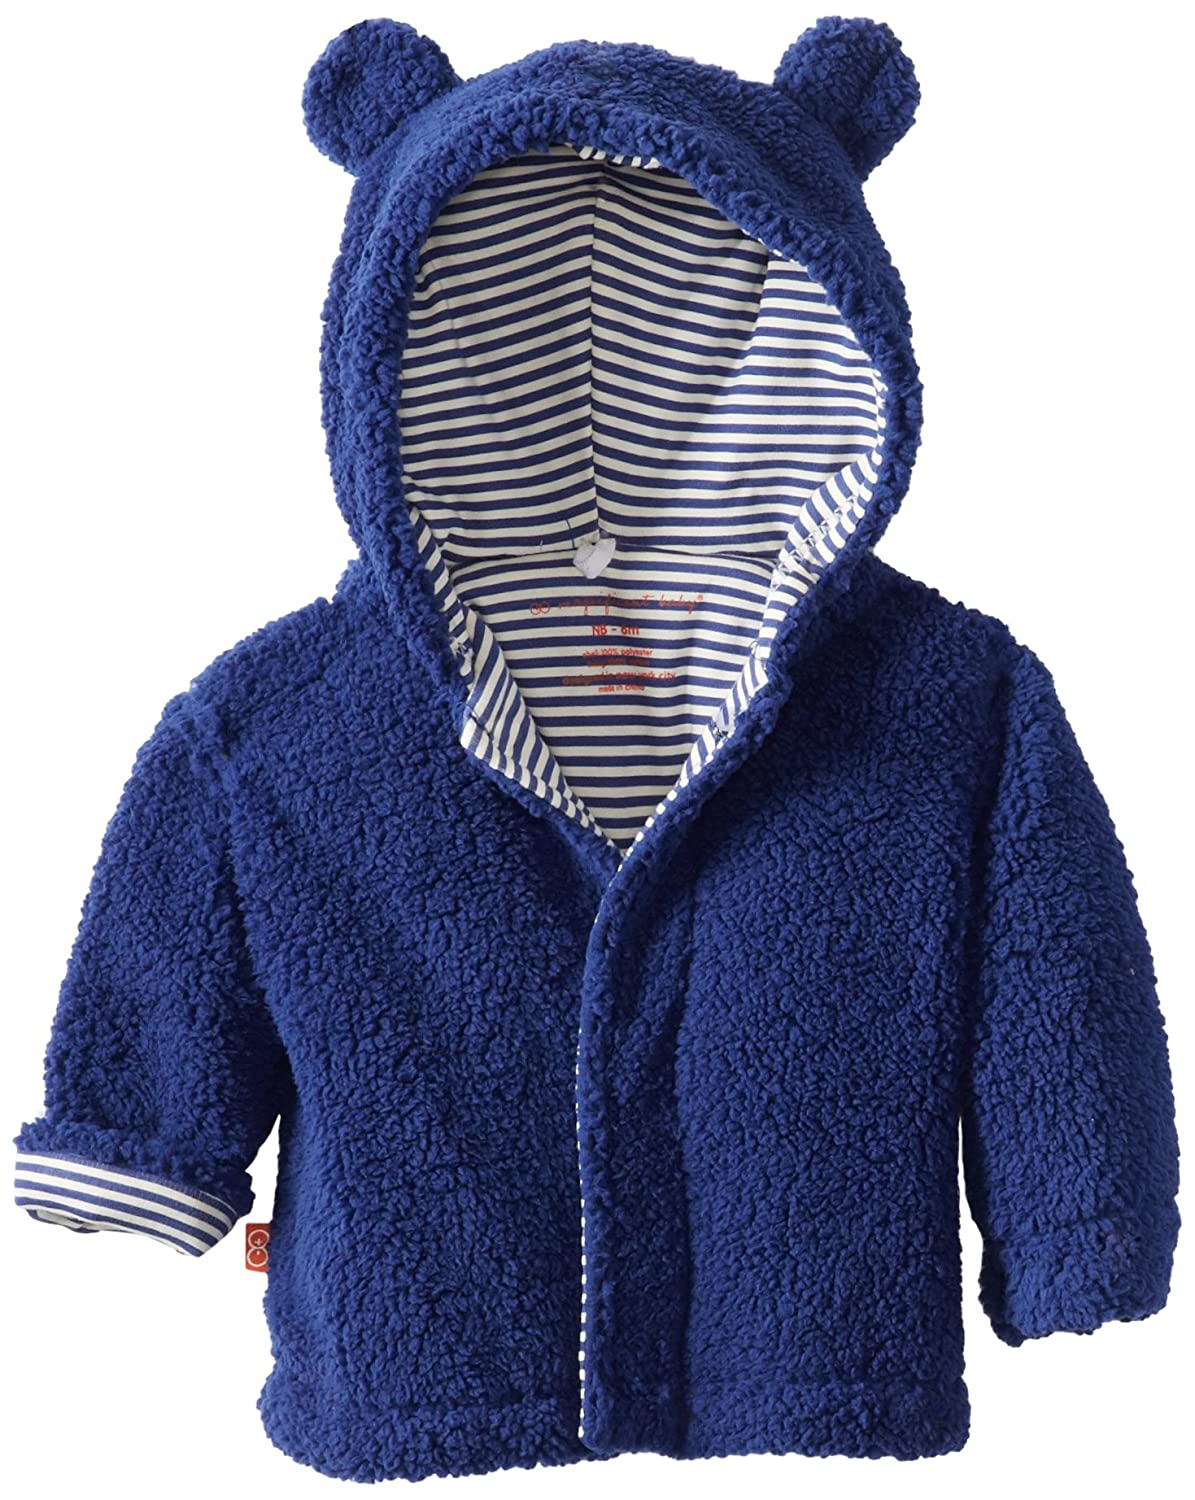 Magnificent Baby Hooded Bear Jacket, 18-24 Months, 1-Pack, Mocha 5003U--18-24M